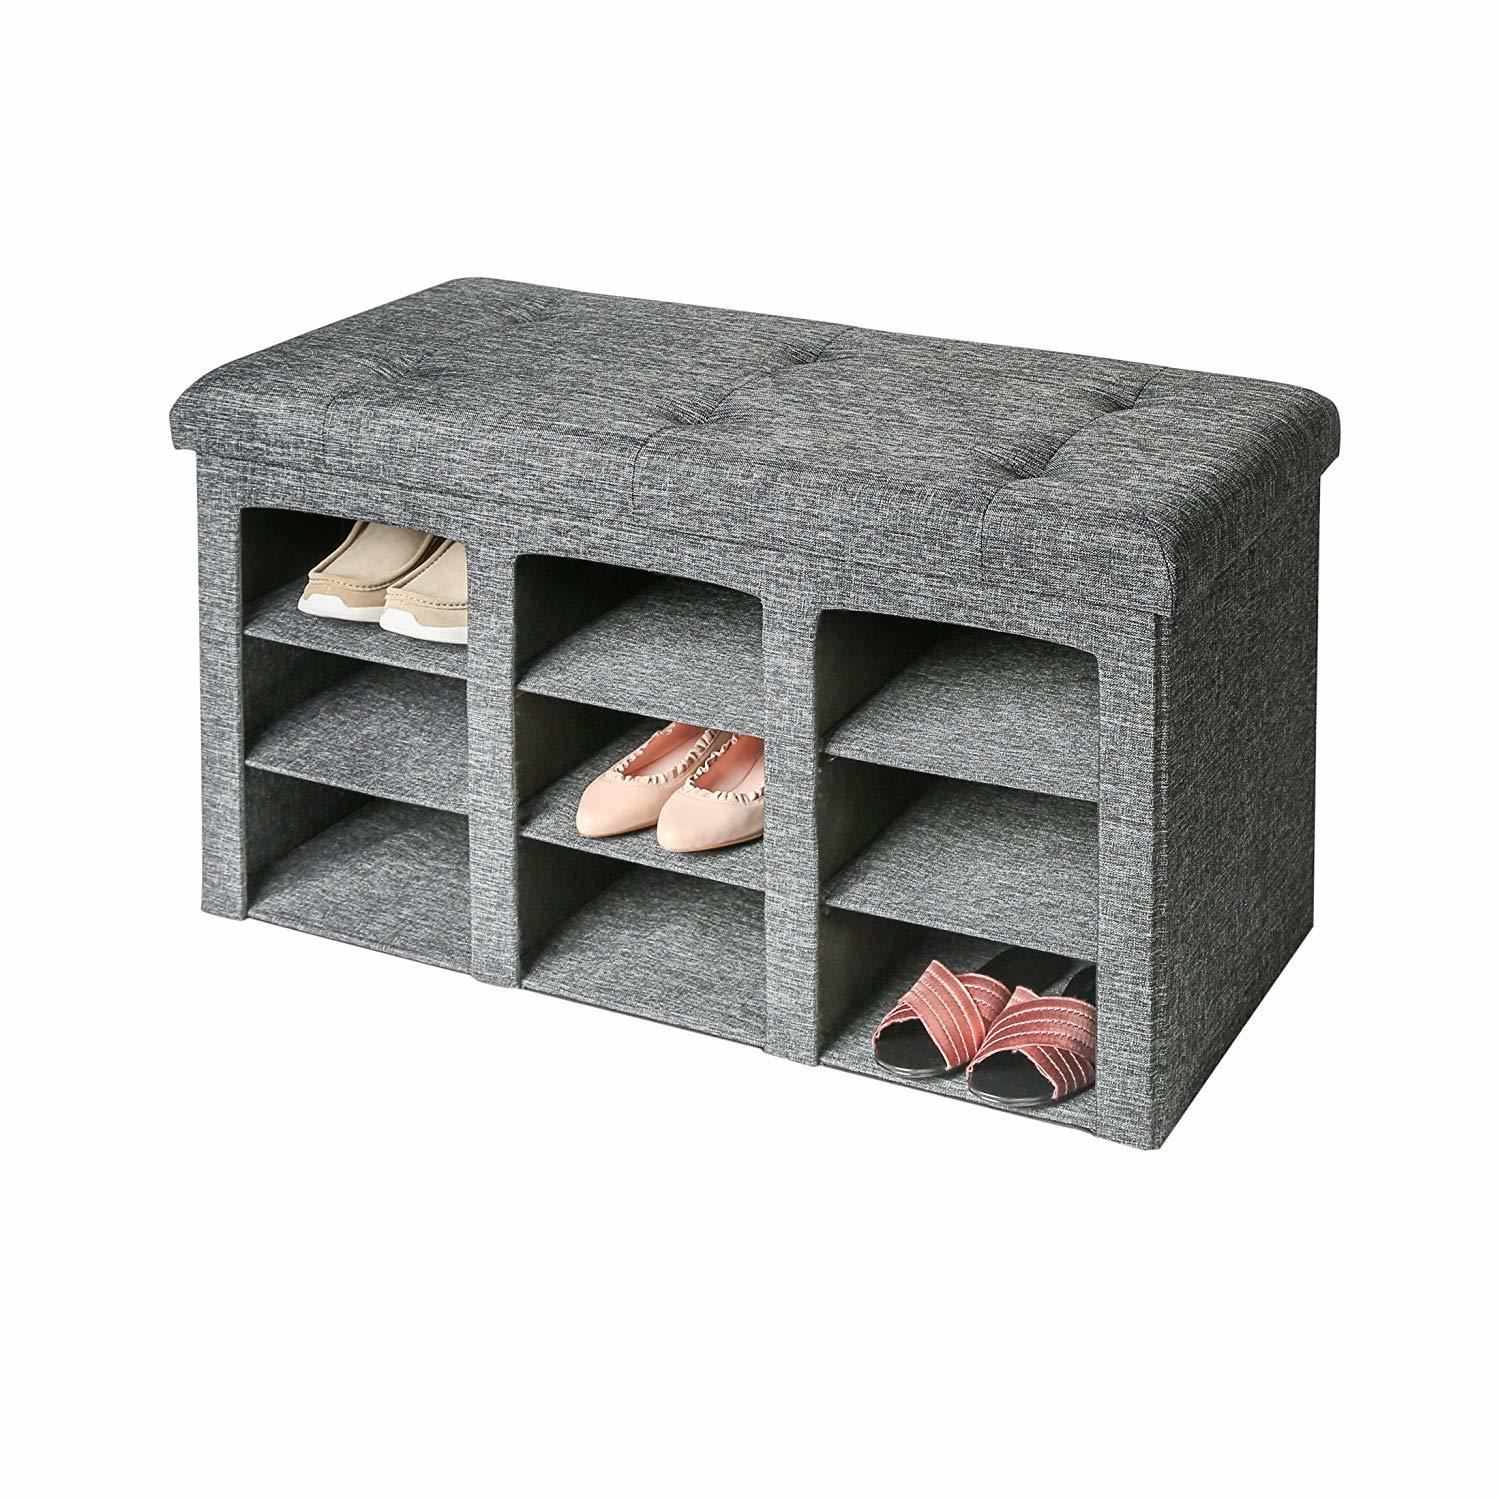 shoe storage hacks with charcoal gray fabric with button-tufted cushioned top and synthetic non-woven fabric for a touch of elegance and comfort.